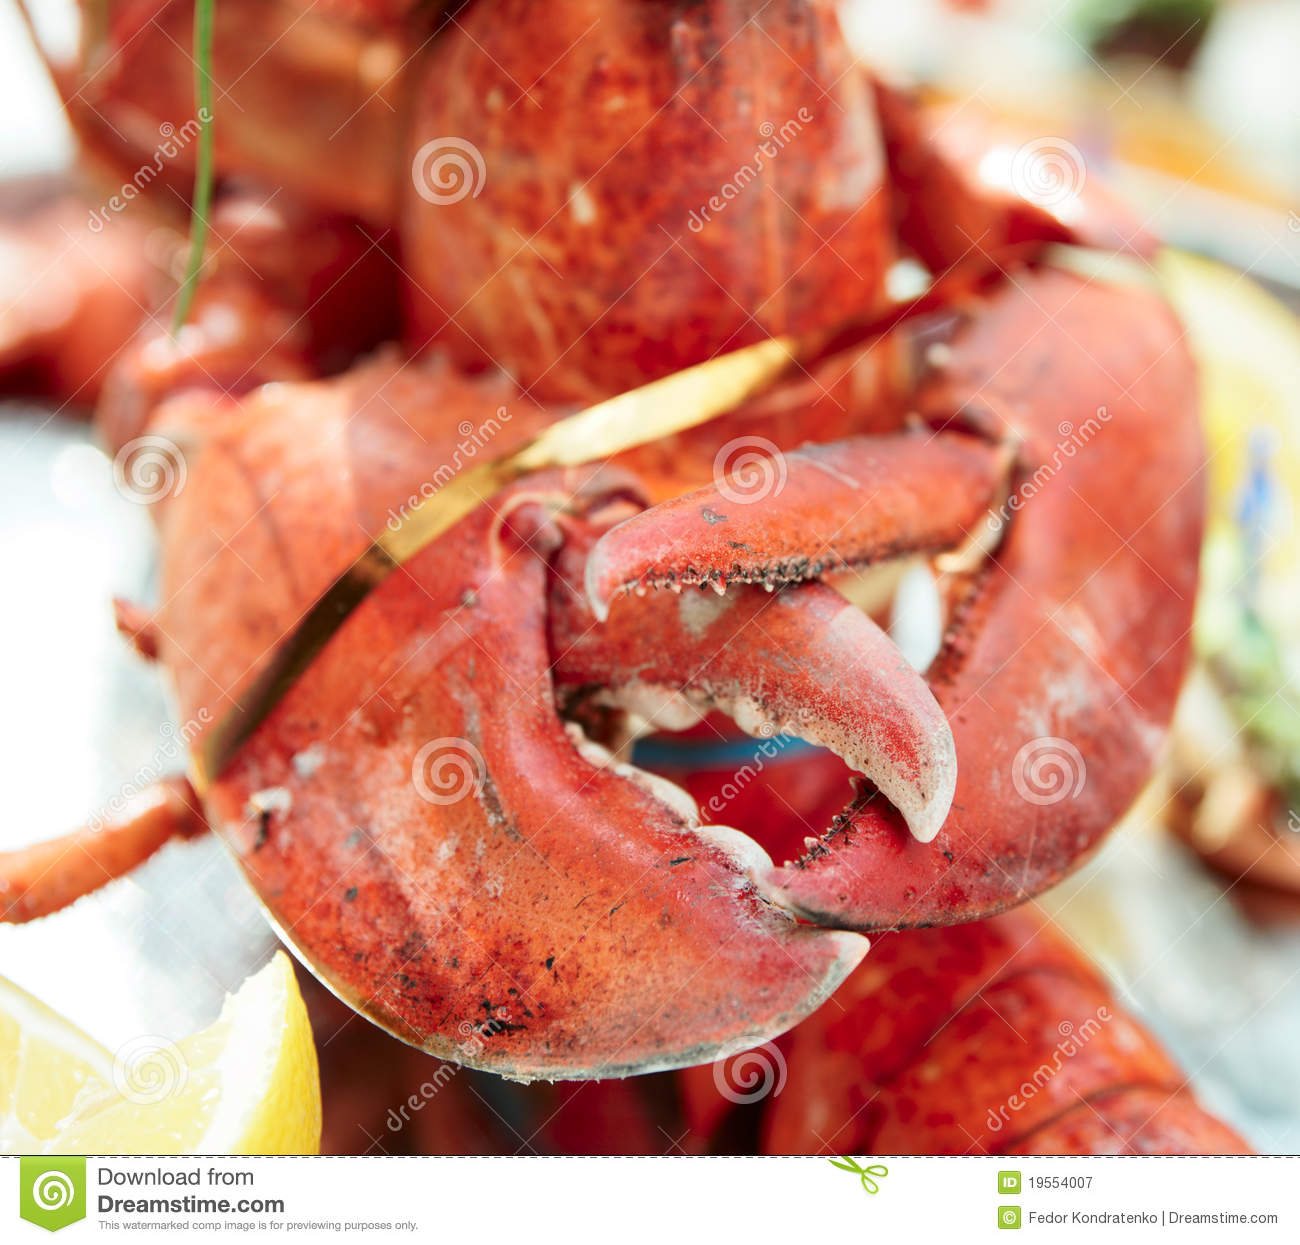 how to cook lobster claws